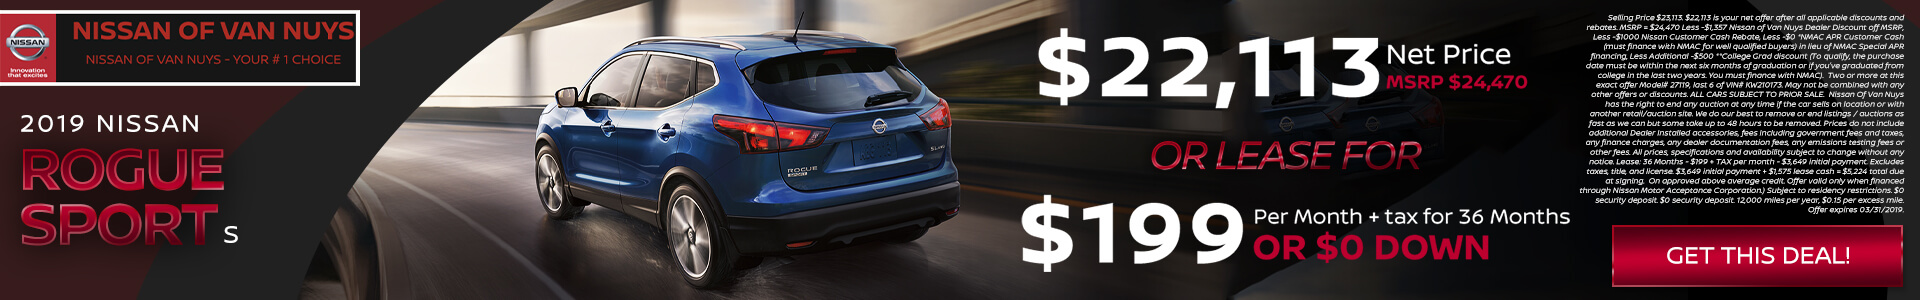 Nissan Rogue Sport $22,113 Purchase/Lease